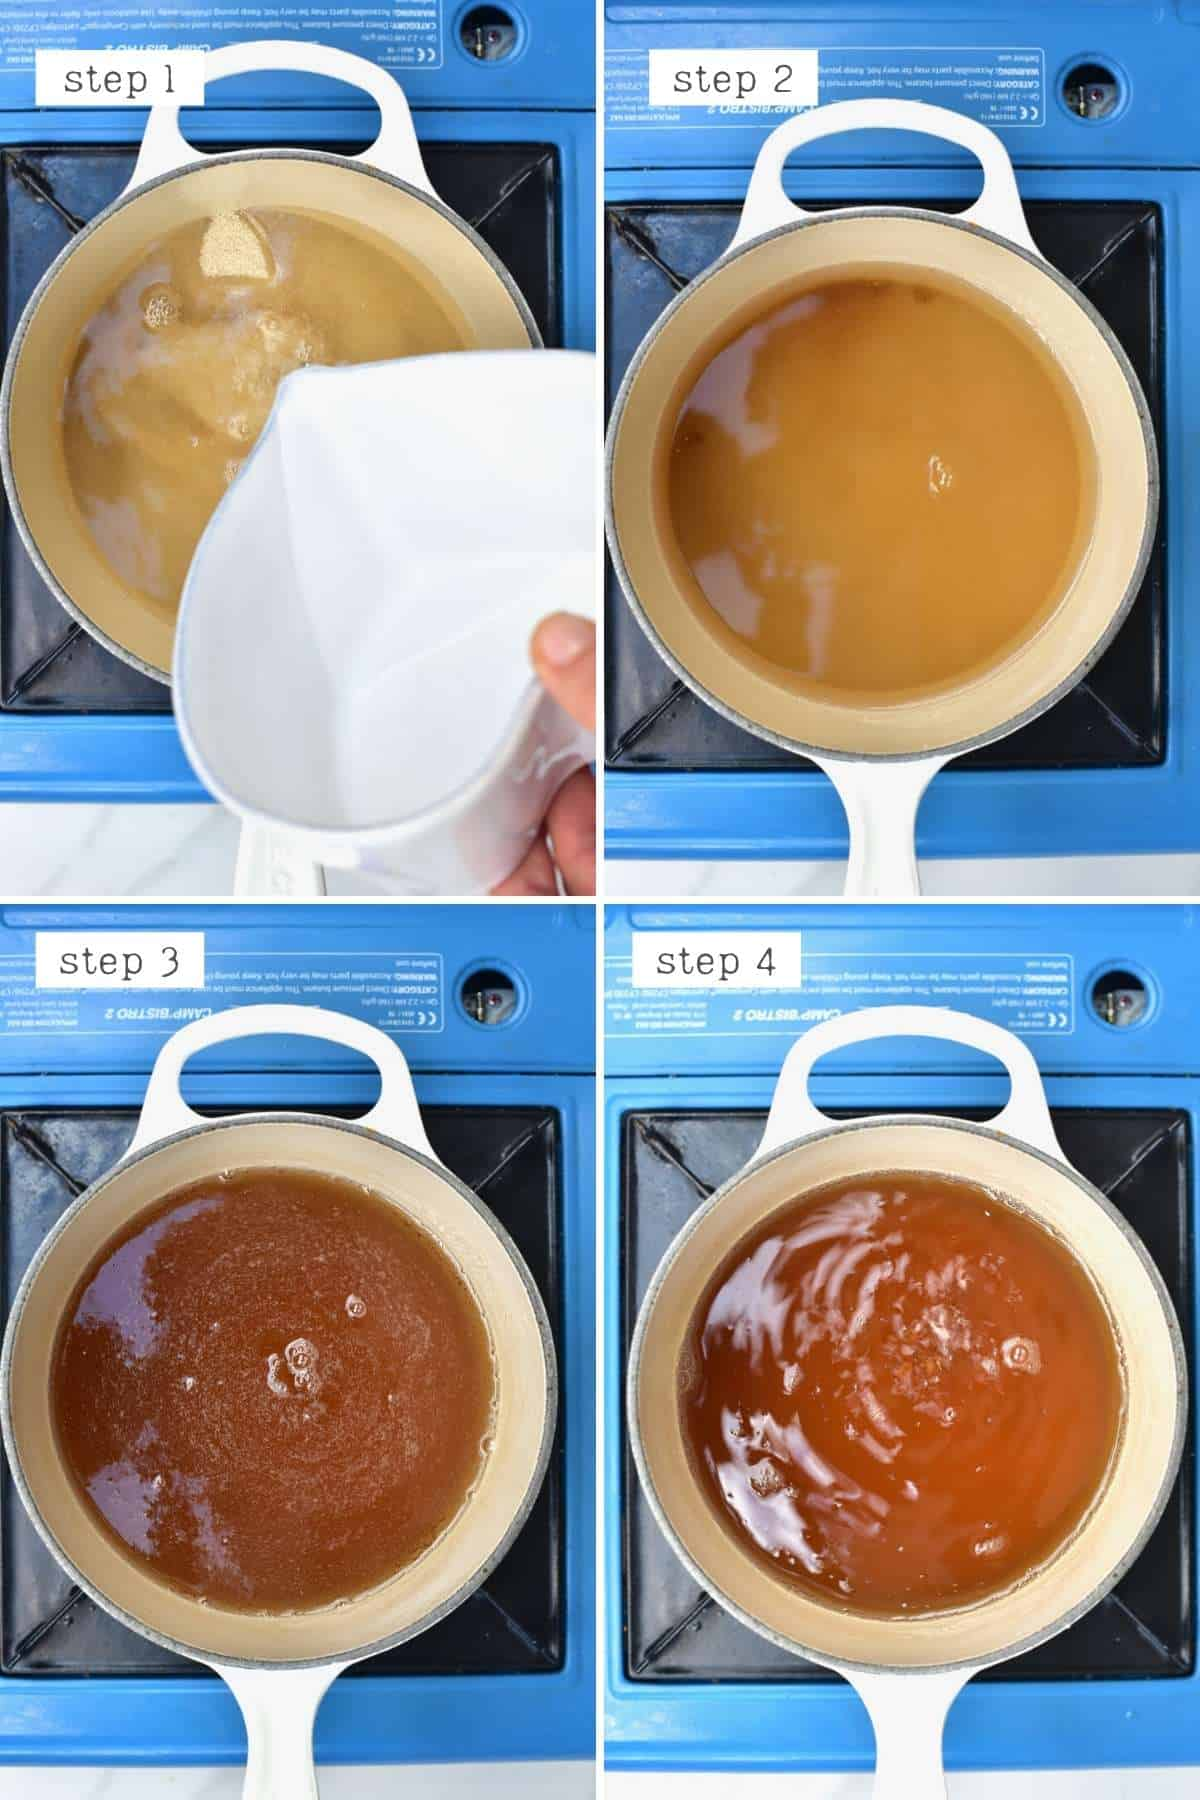 Steps for making sugar syrup